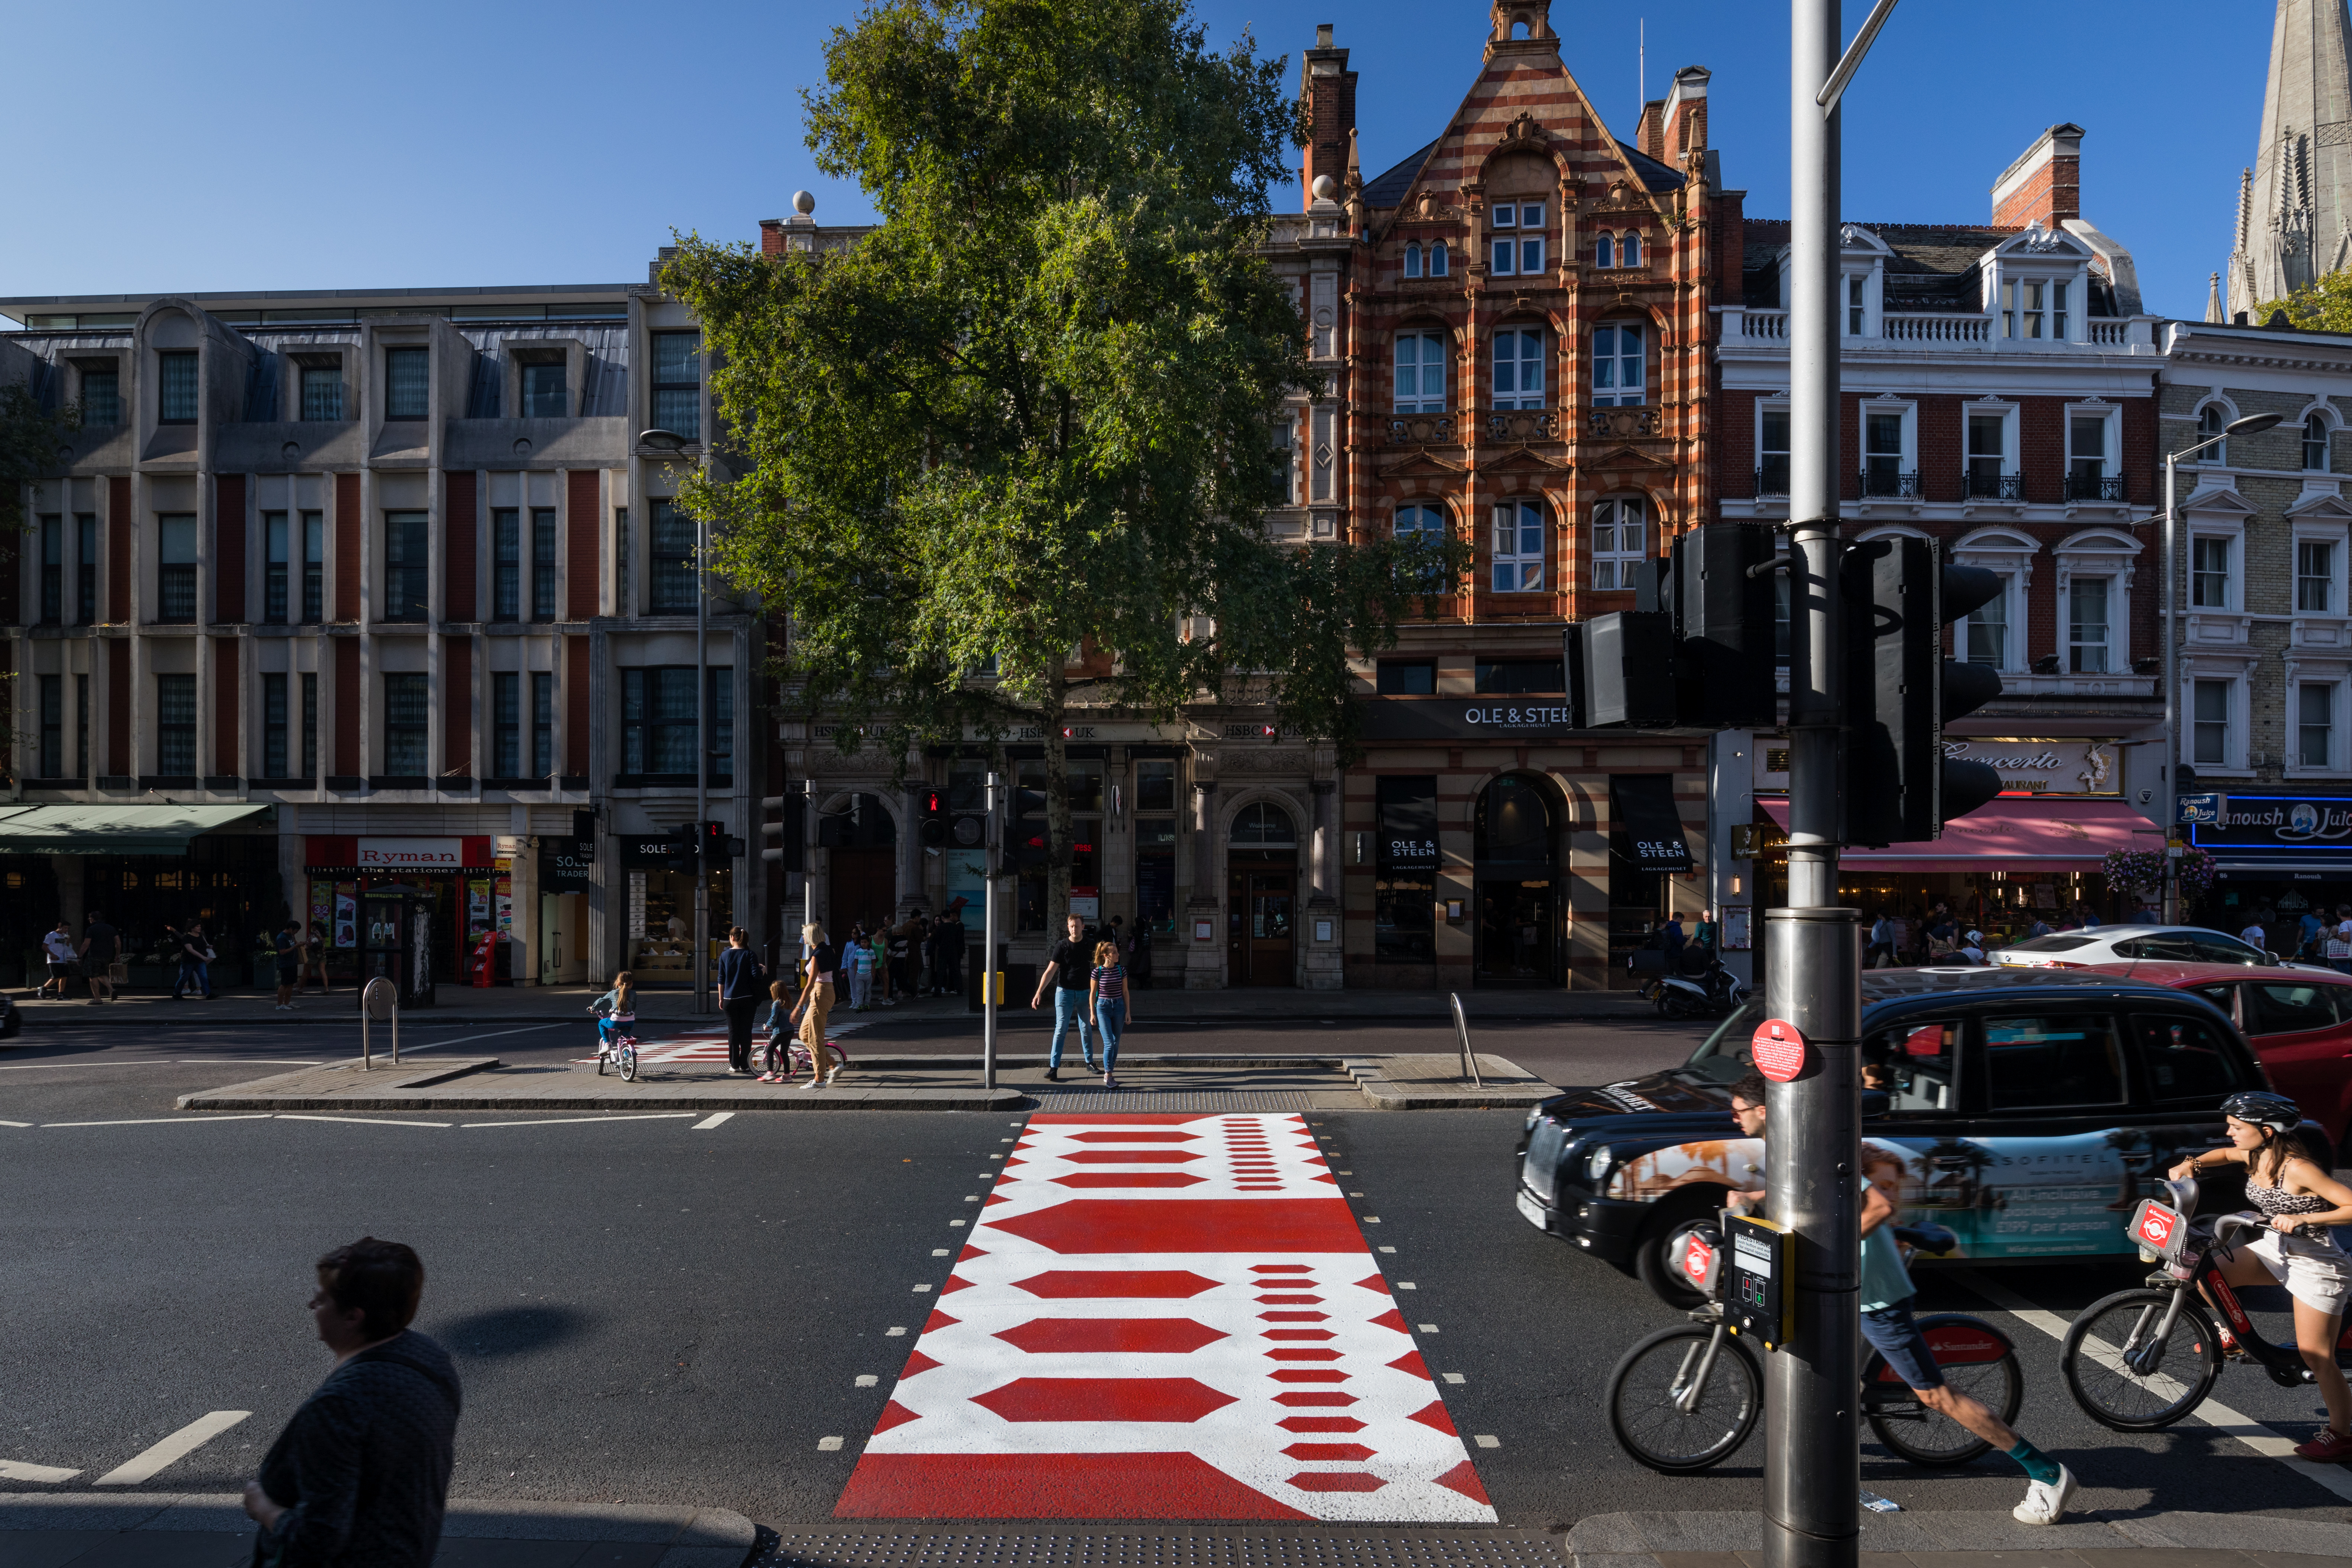 The Creative Crossing designed by Hara Kenya for Japan House London on Kensington High Street 26